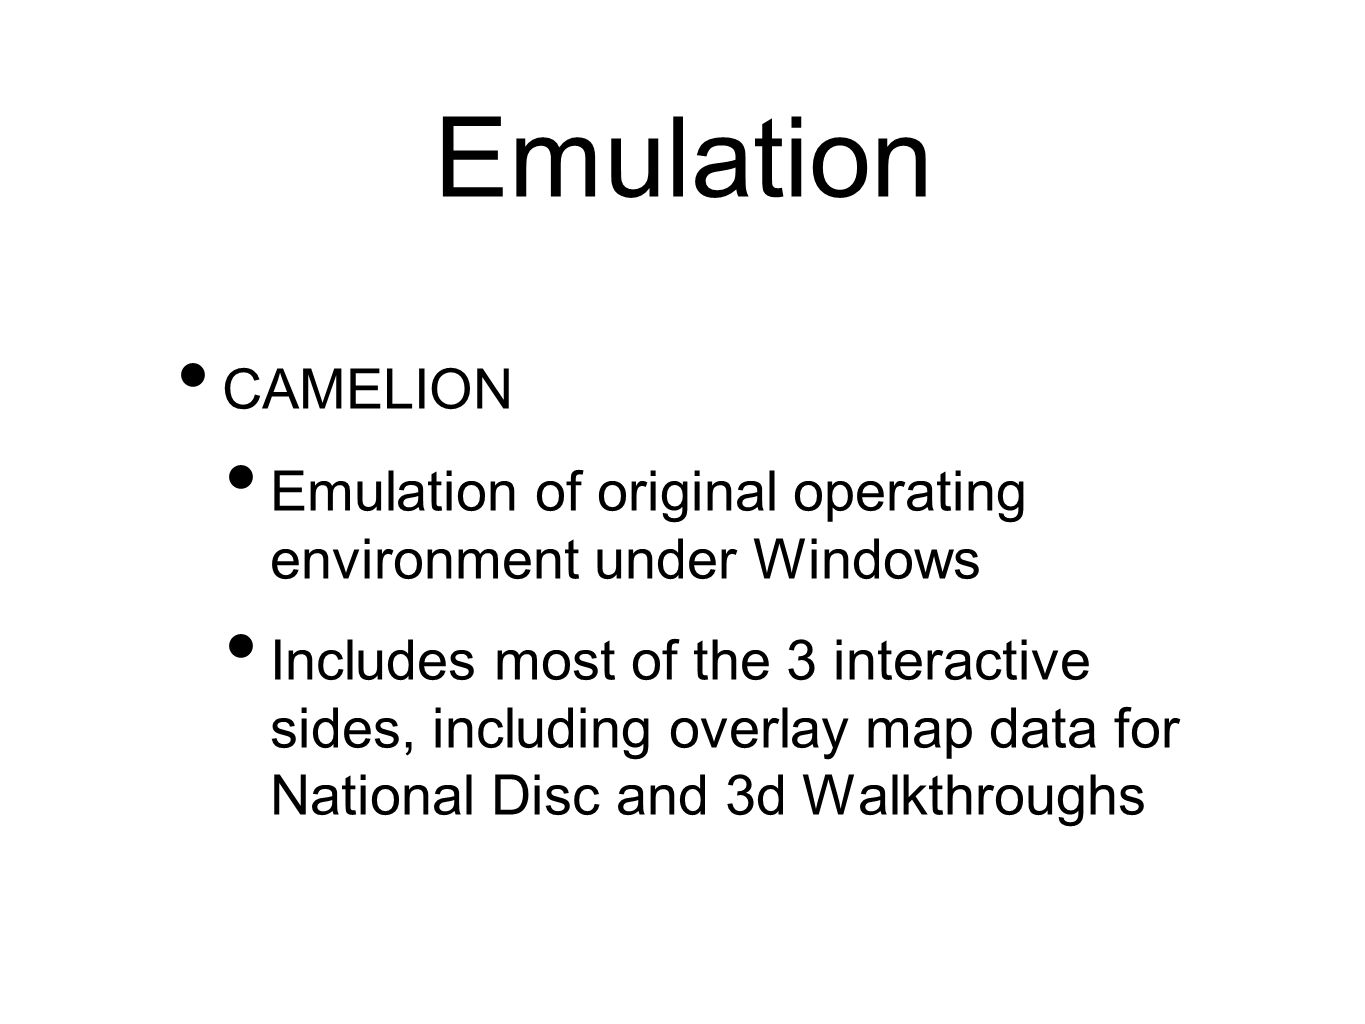 Emulation CAMELION Emulation of original operating environment under Windows Includes most of the 3 interactive sides, including overlay map data for National Disc and 3d Walkthroughs